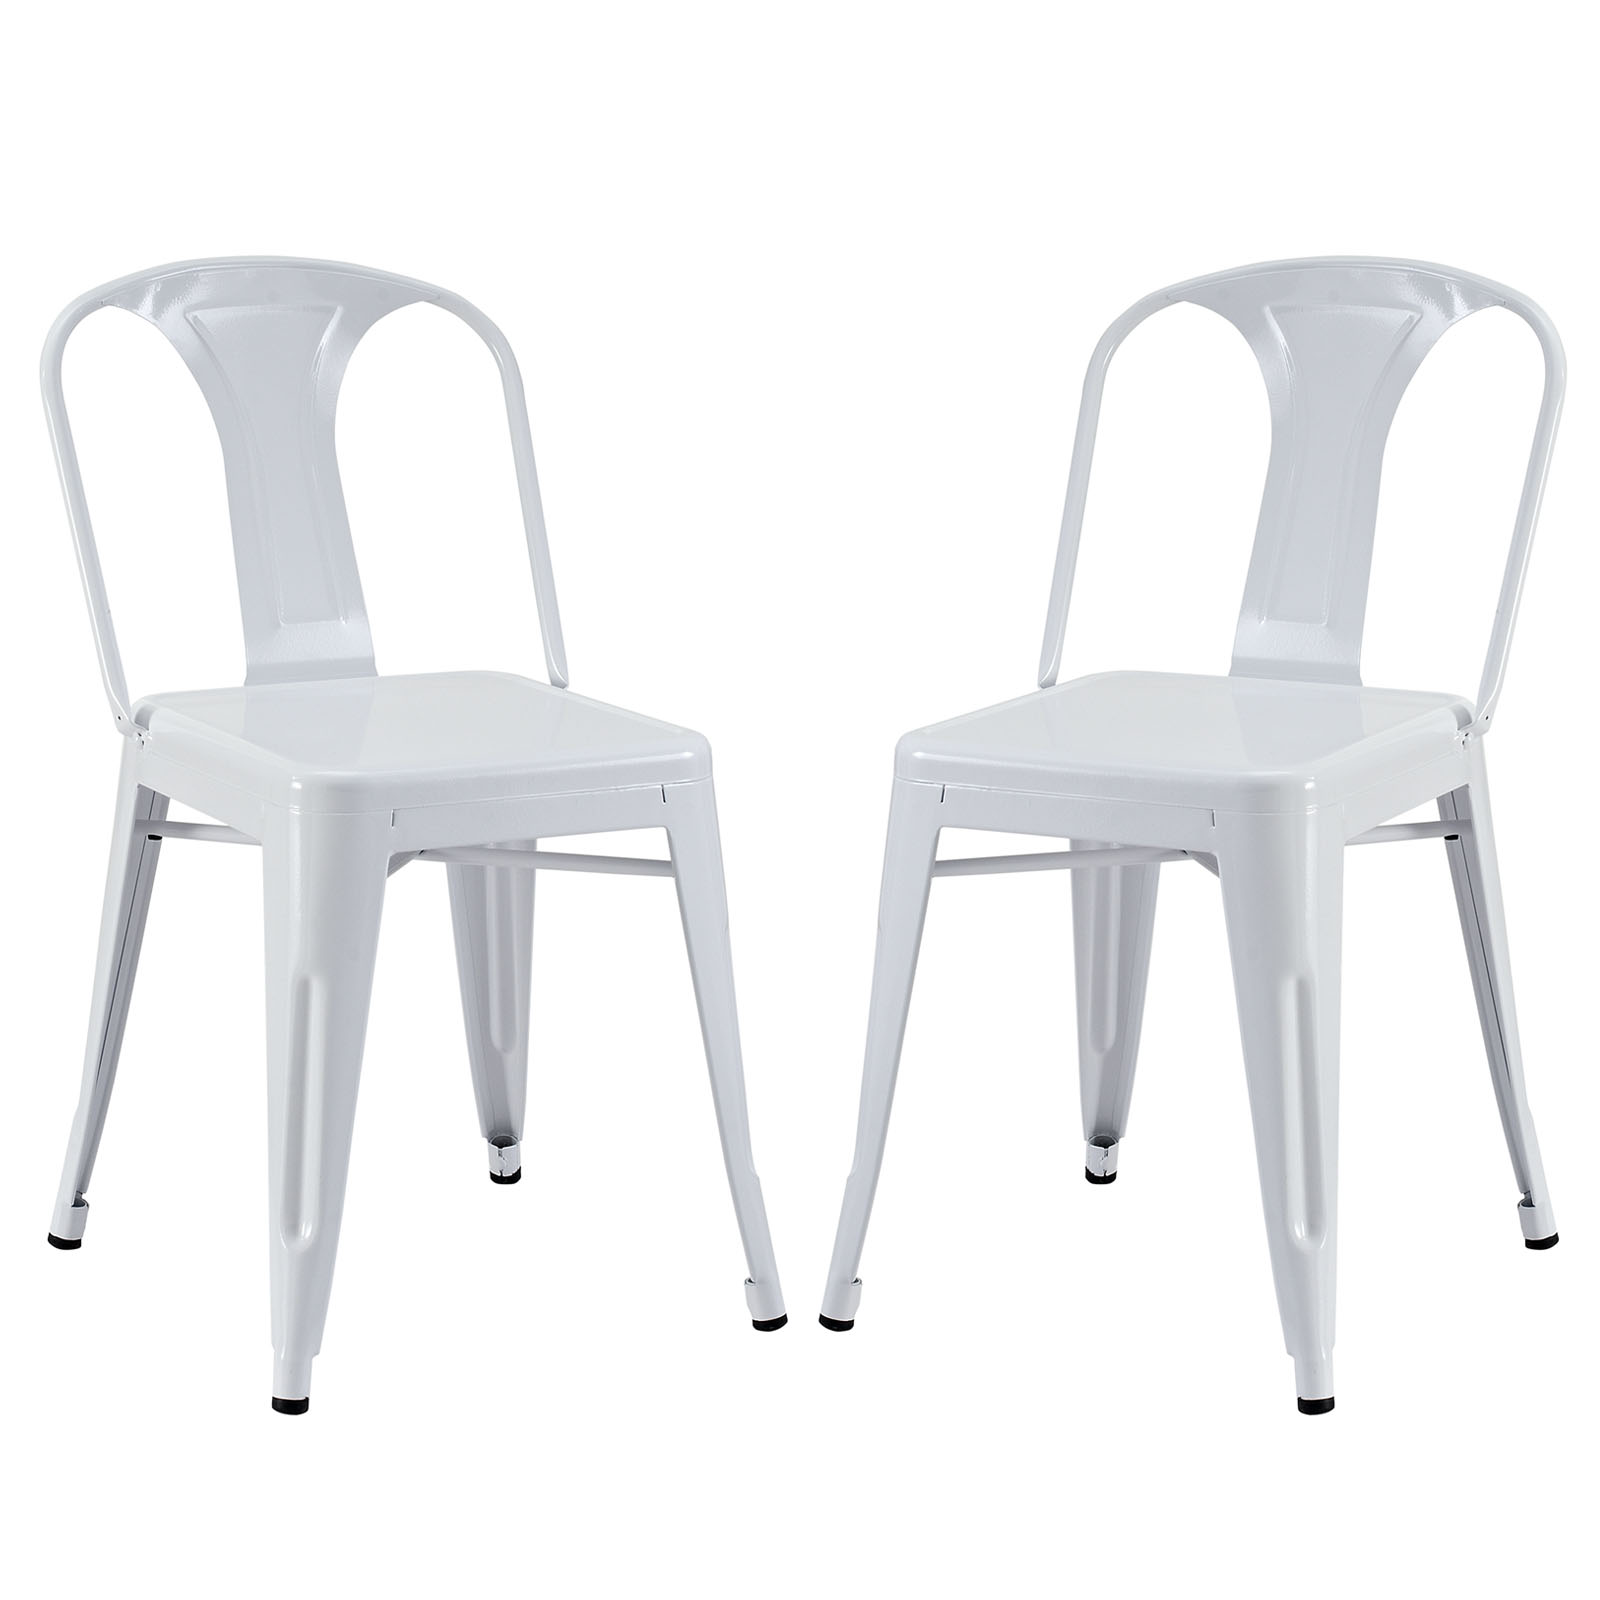 Reception Dining Side Chair Set of 2 White EEI-1301-WHI